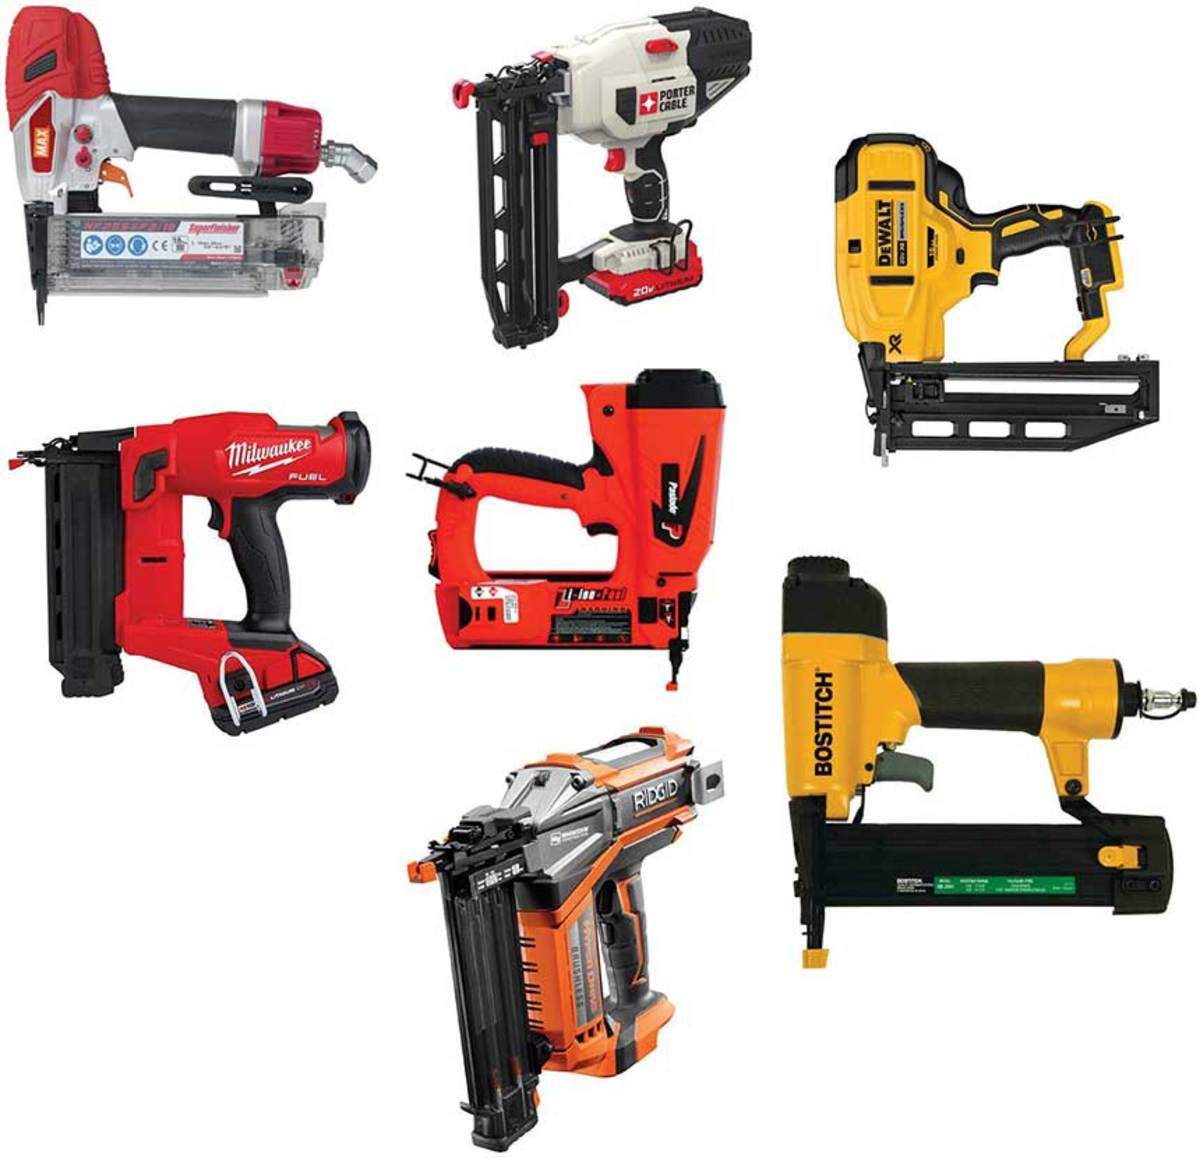 (Top row, from left) The SuperFinisher from Max USA; Porter-Cable's cordless 16-gauge nailer, and DeWalt's DCN662B.   (Second row) Cordless 18-gauge brad nailers from Milwaukee and Paslode.   (Third row) Ridgid's HyperDrive brad nailer and the Bostitch SB-2IN1.